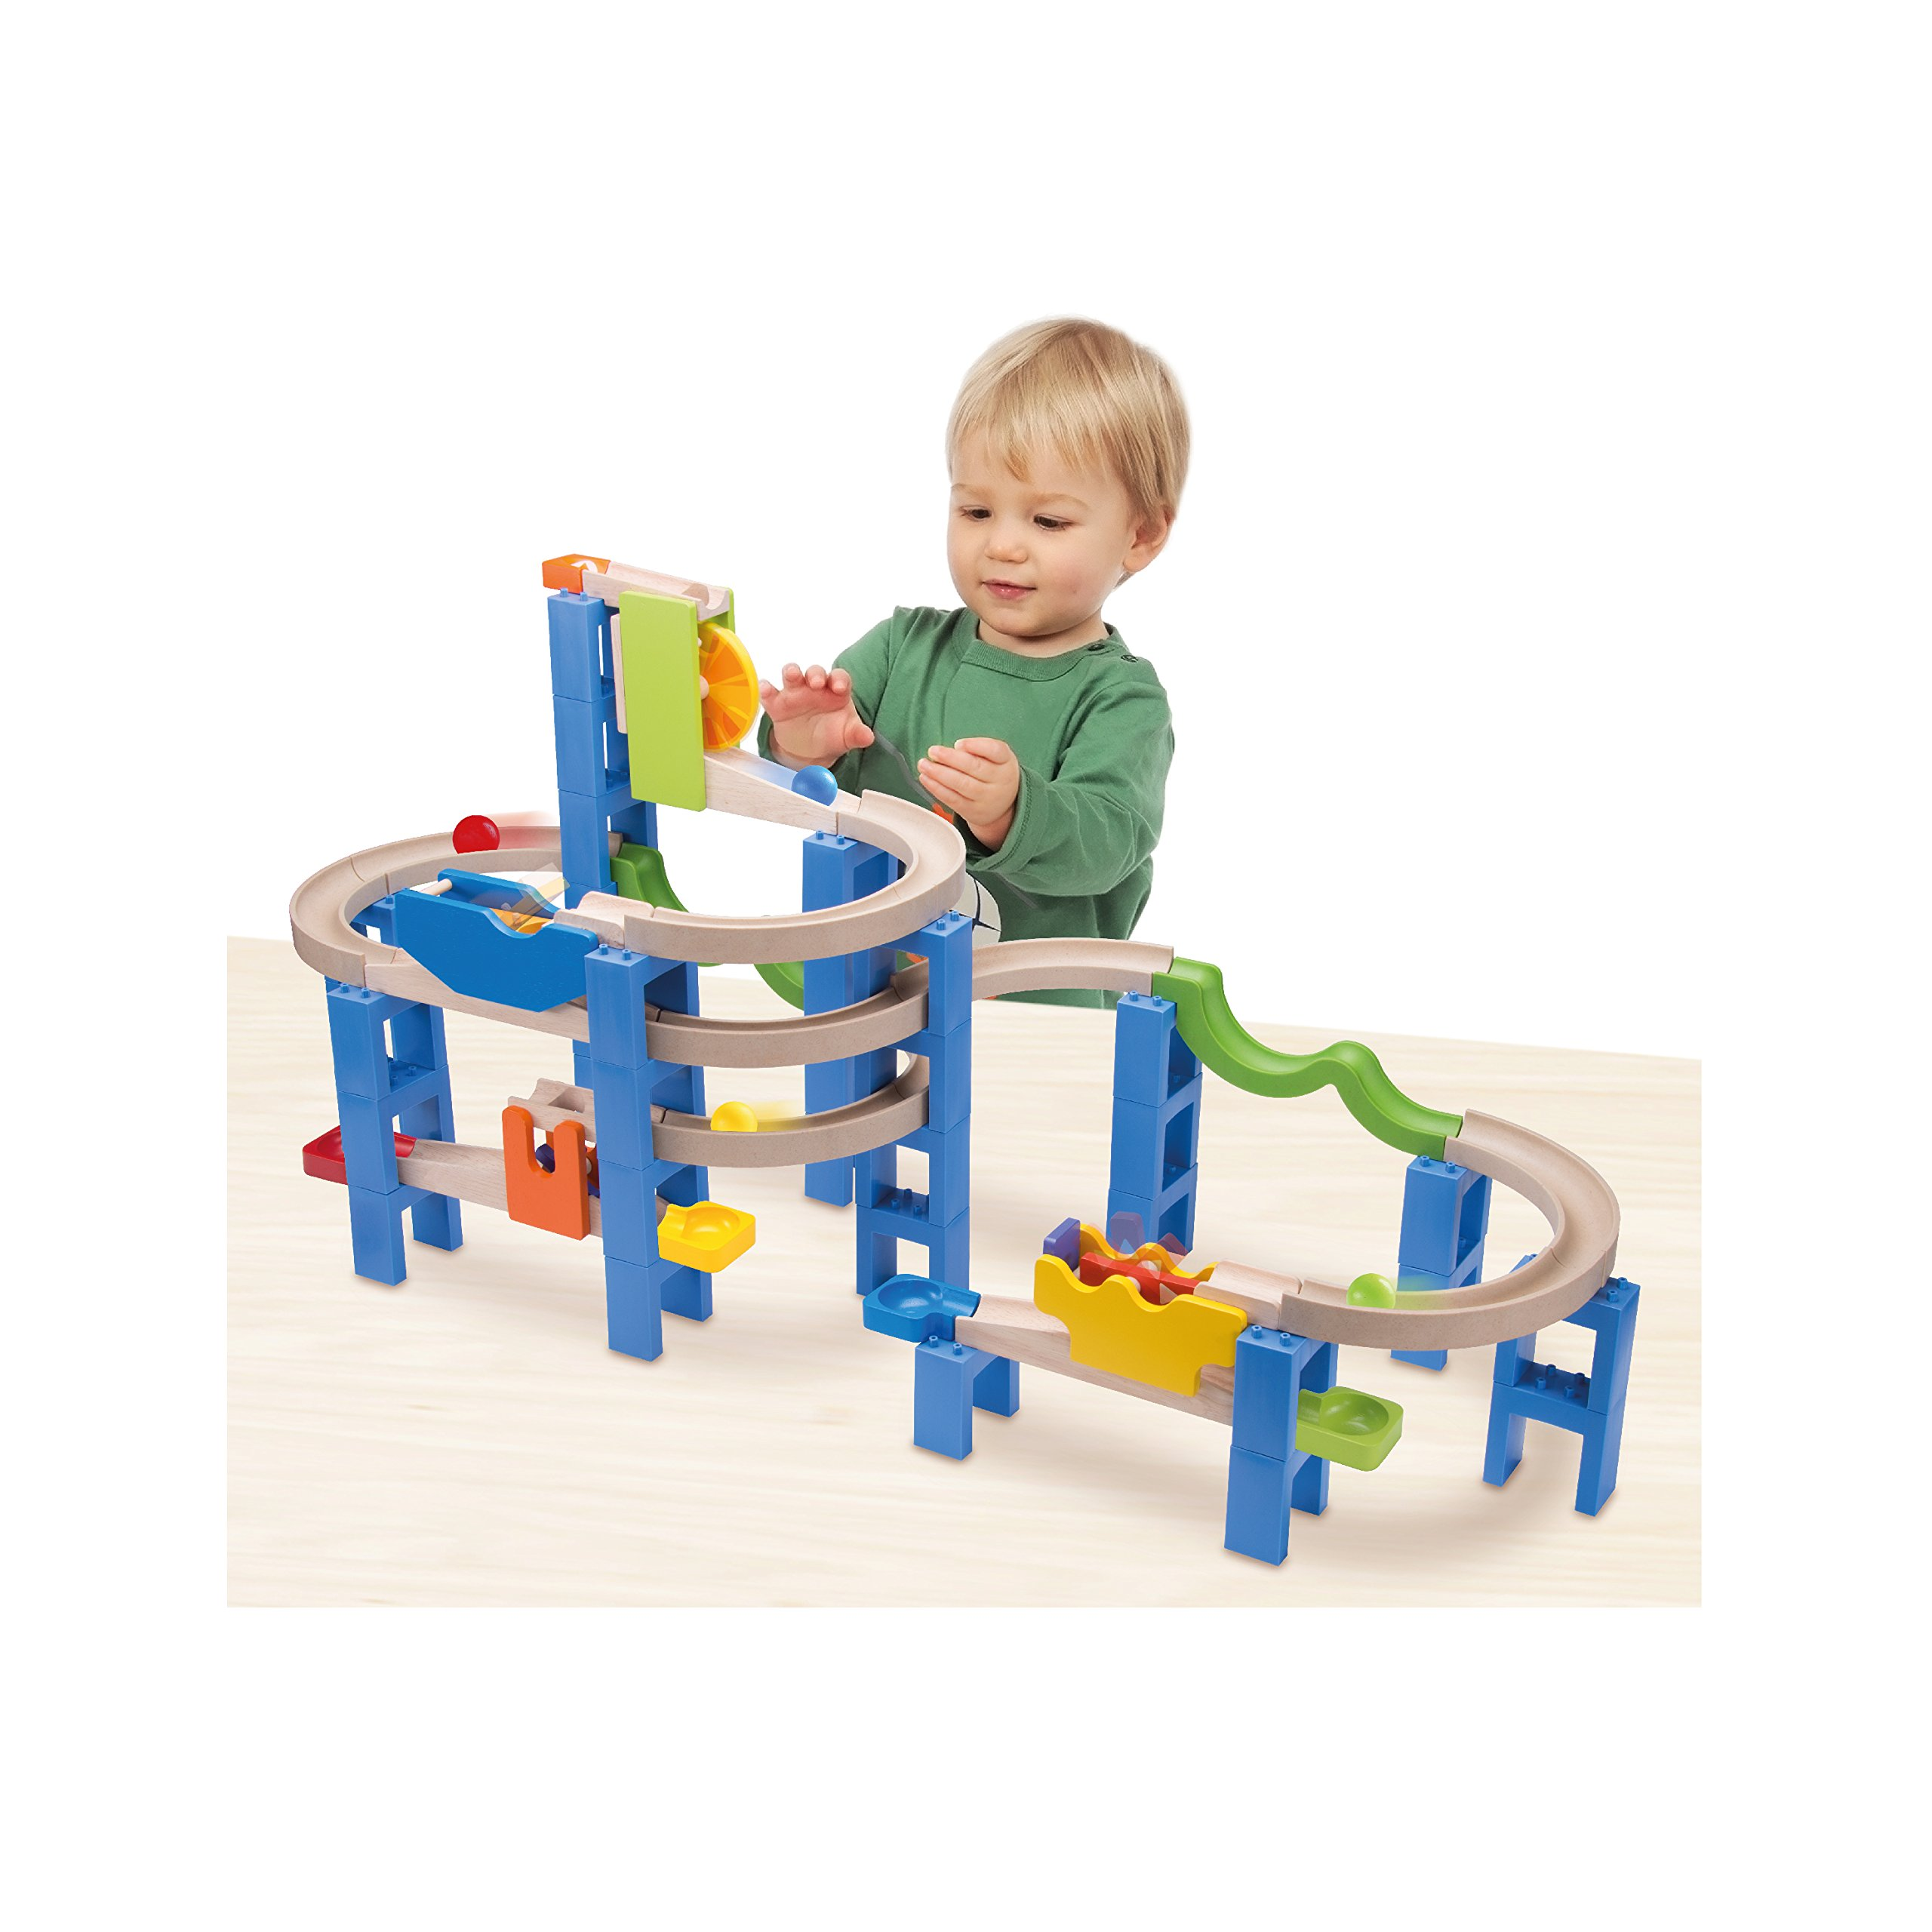 Wonderworld Creative Gravity Play! Trix Tracks Spiral Coaster Track - 54 Piece Set Unique Kids Toy with Endless Building Options